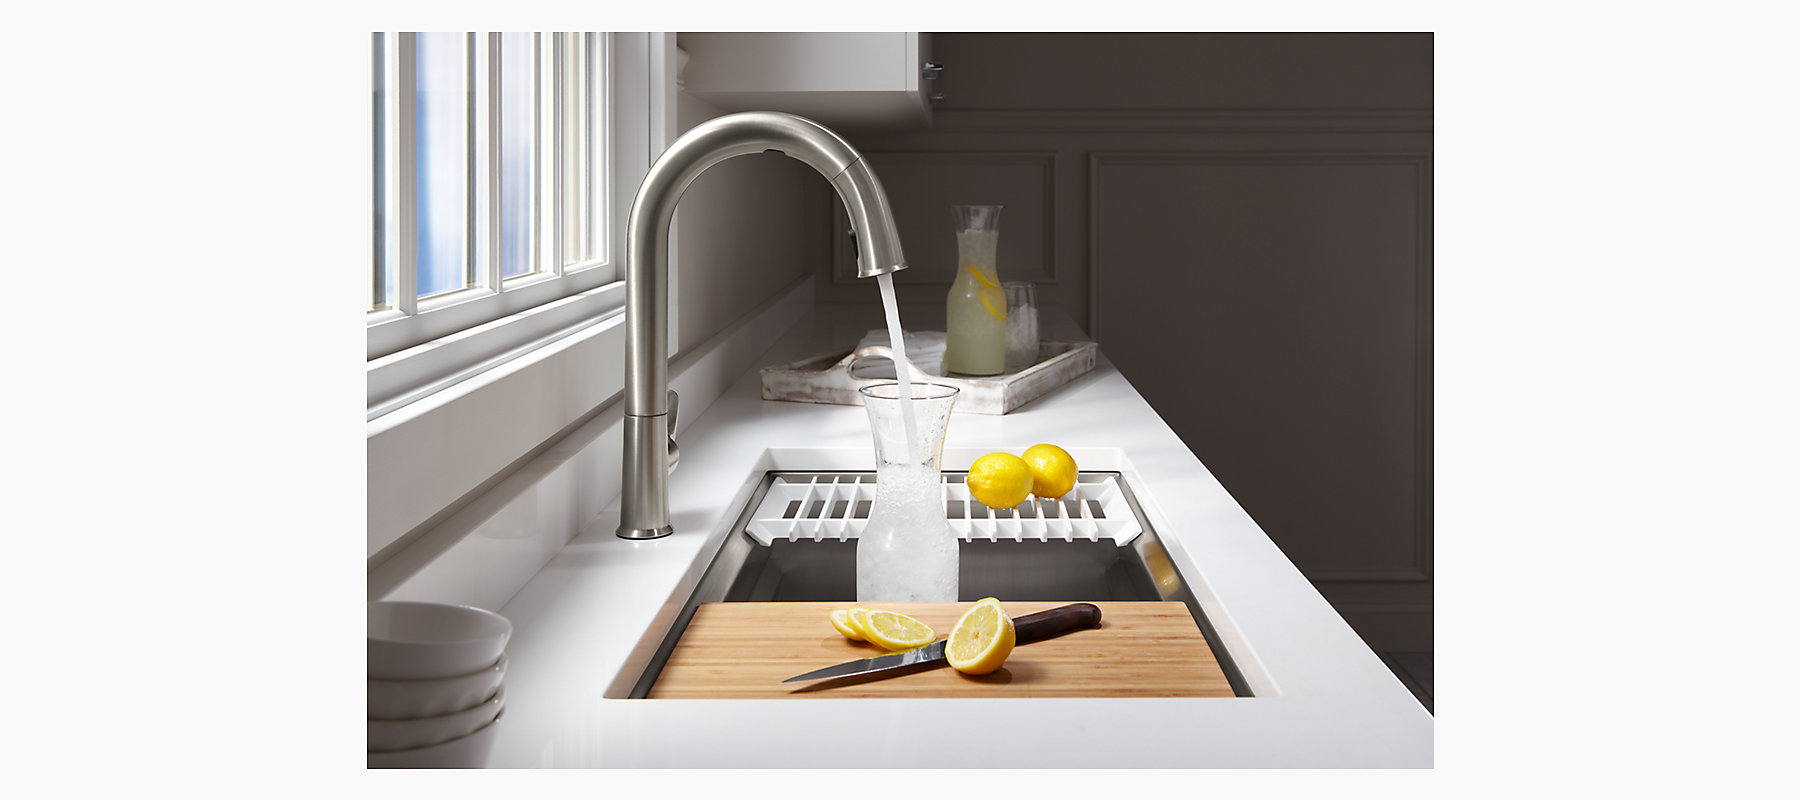 Prolific Under Mount Stainless Steel Sink With Accessories